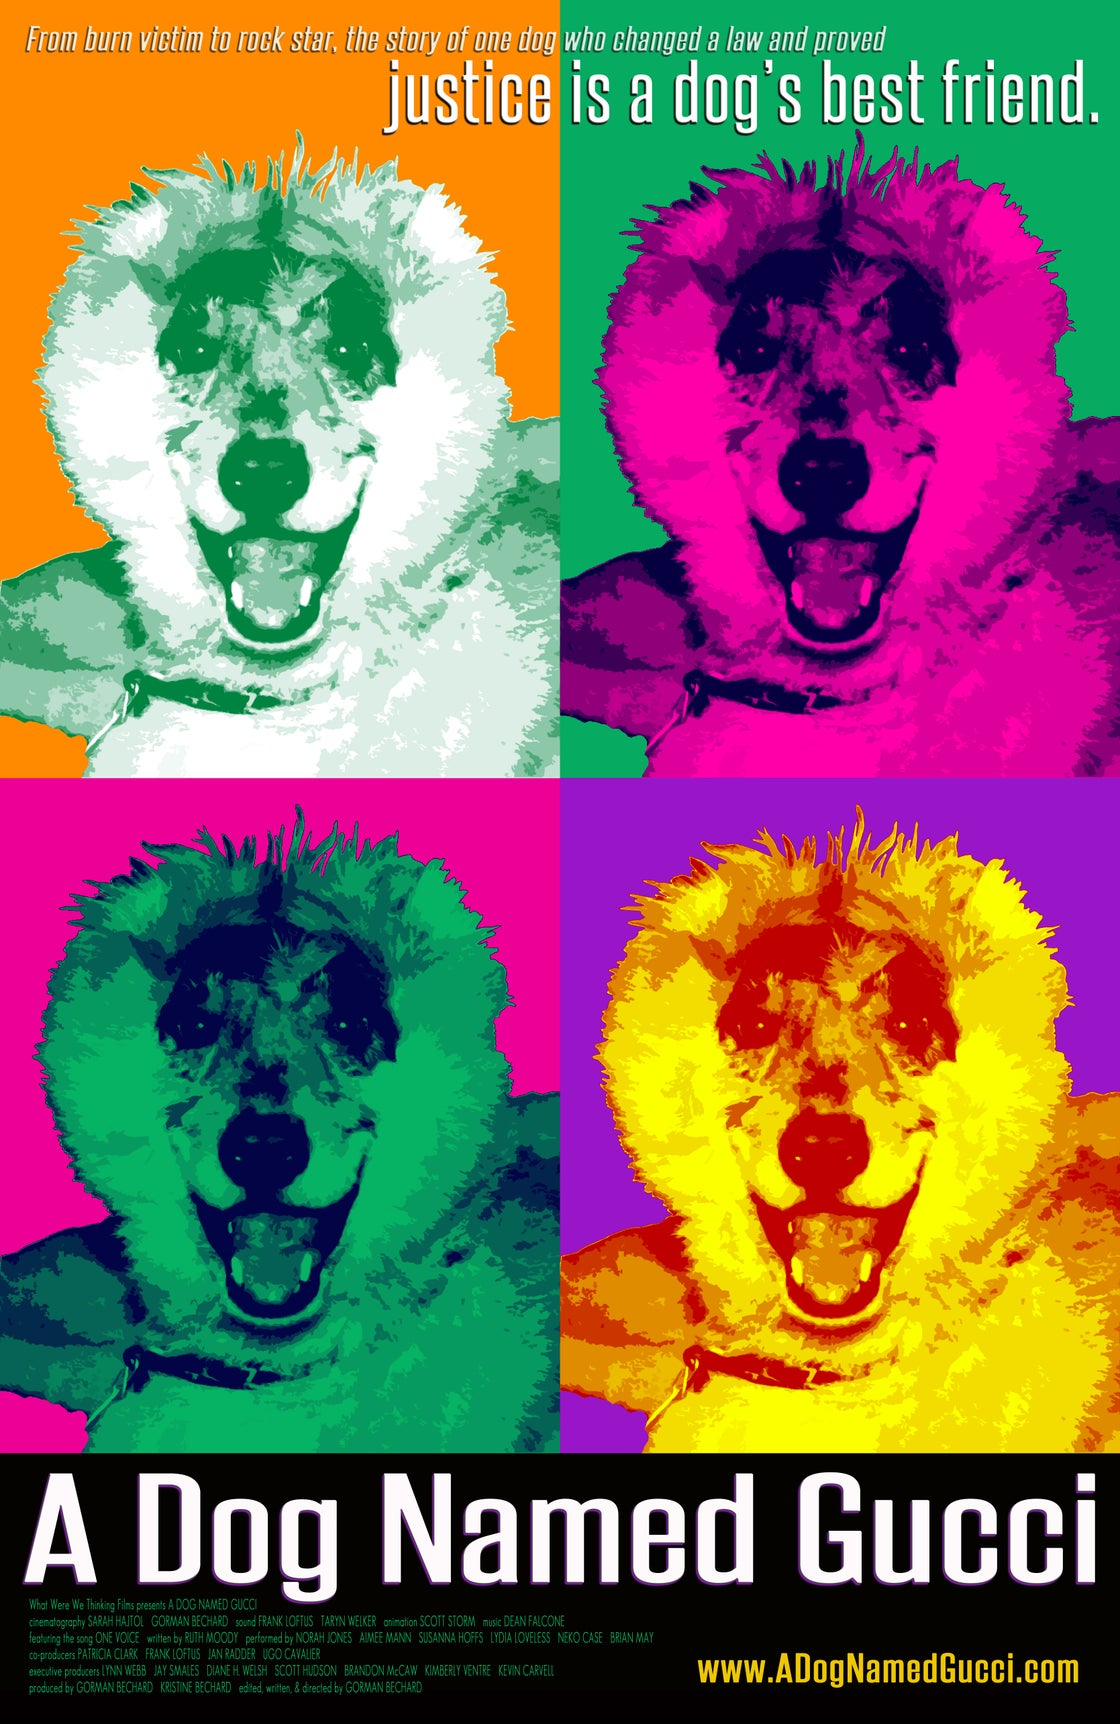 Image of A Dog Named Gucci poster